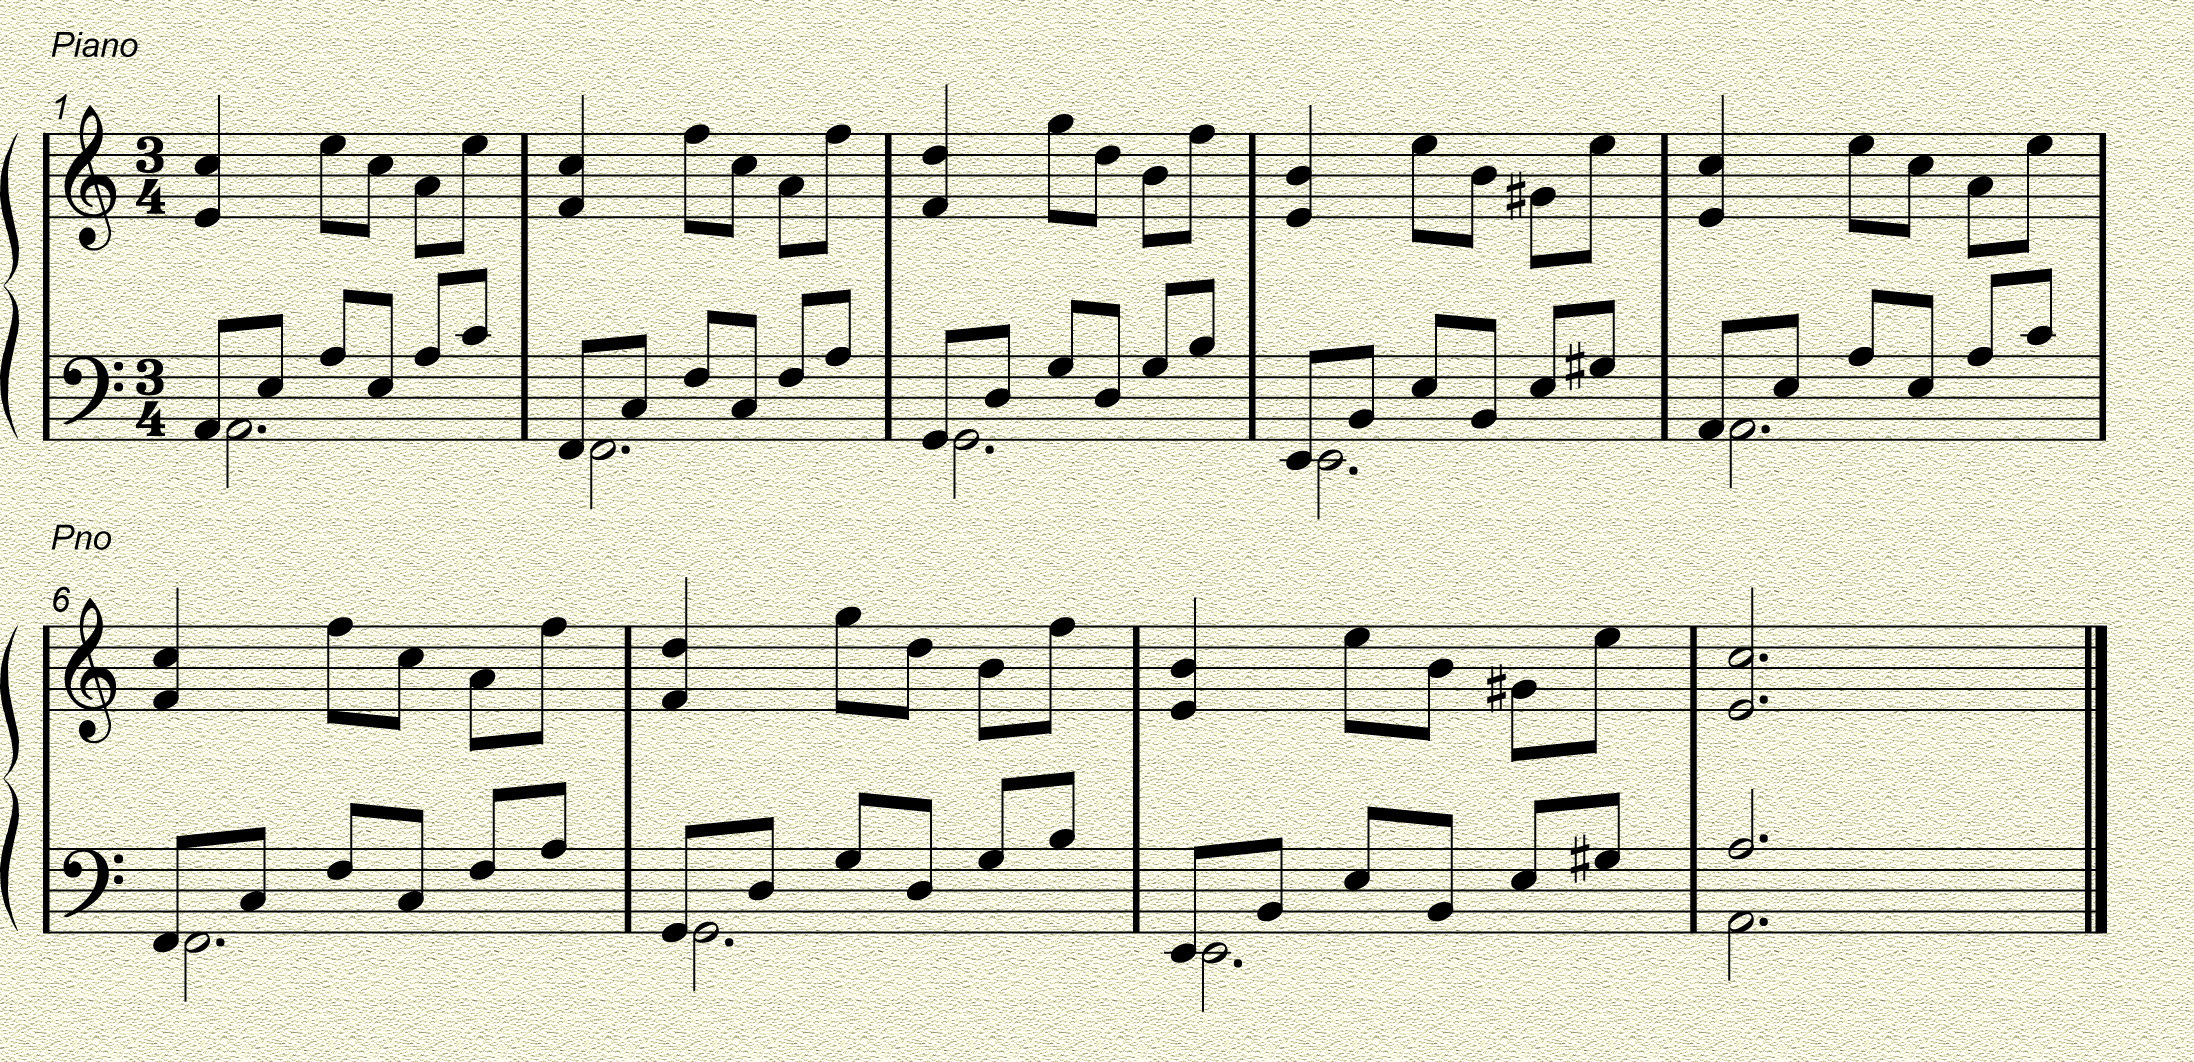 Piano melody over chords future producers forums note the use of the g in chord v this is in key because we use the harmonic minor scale to construct chords for minor keys hexwebz Gallery